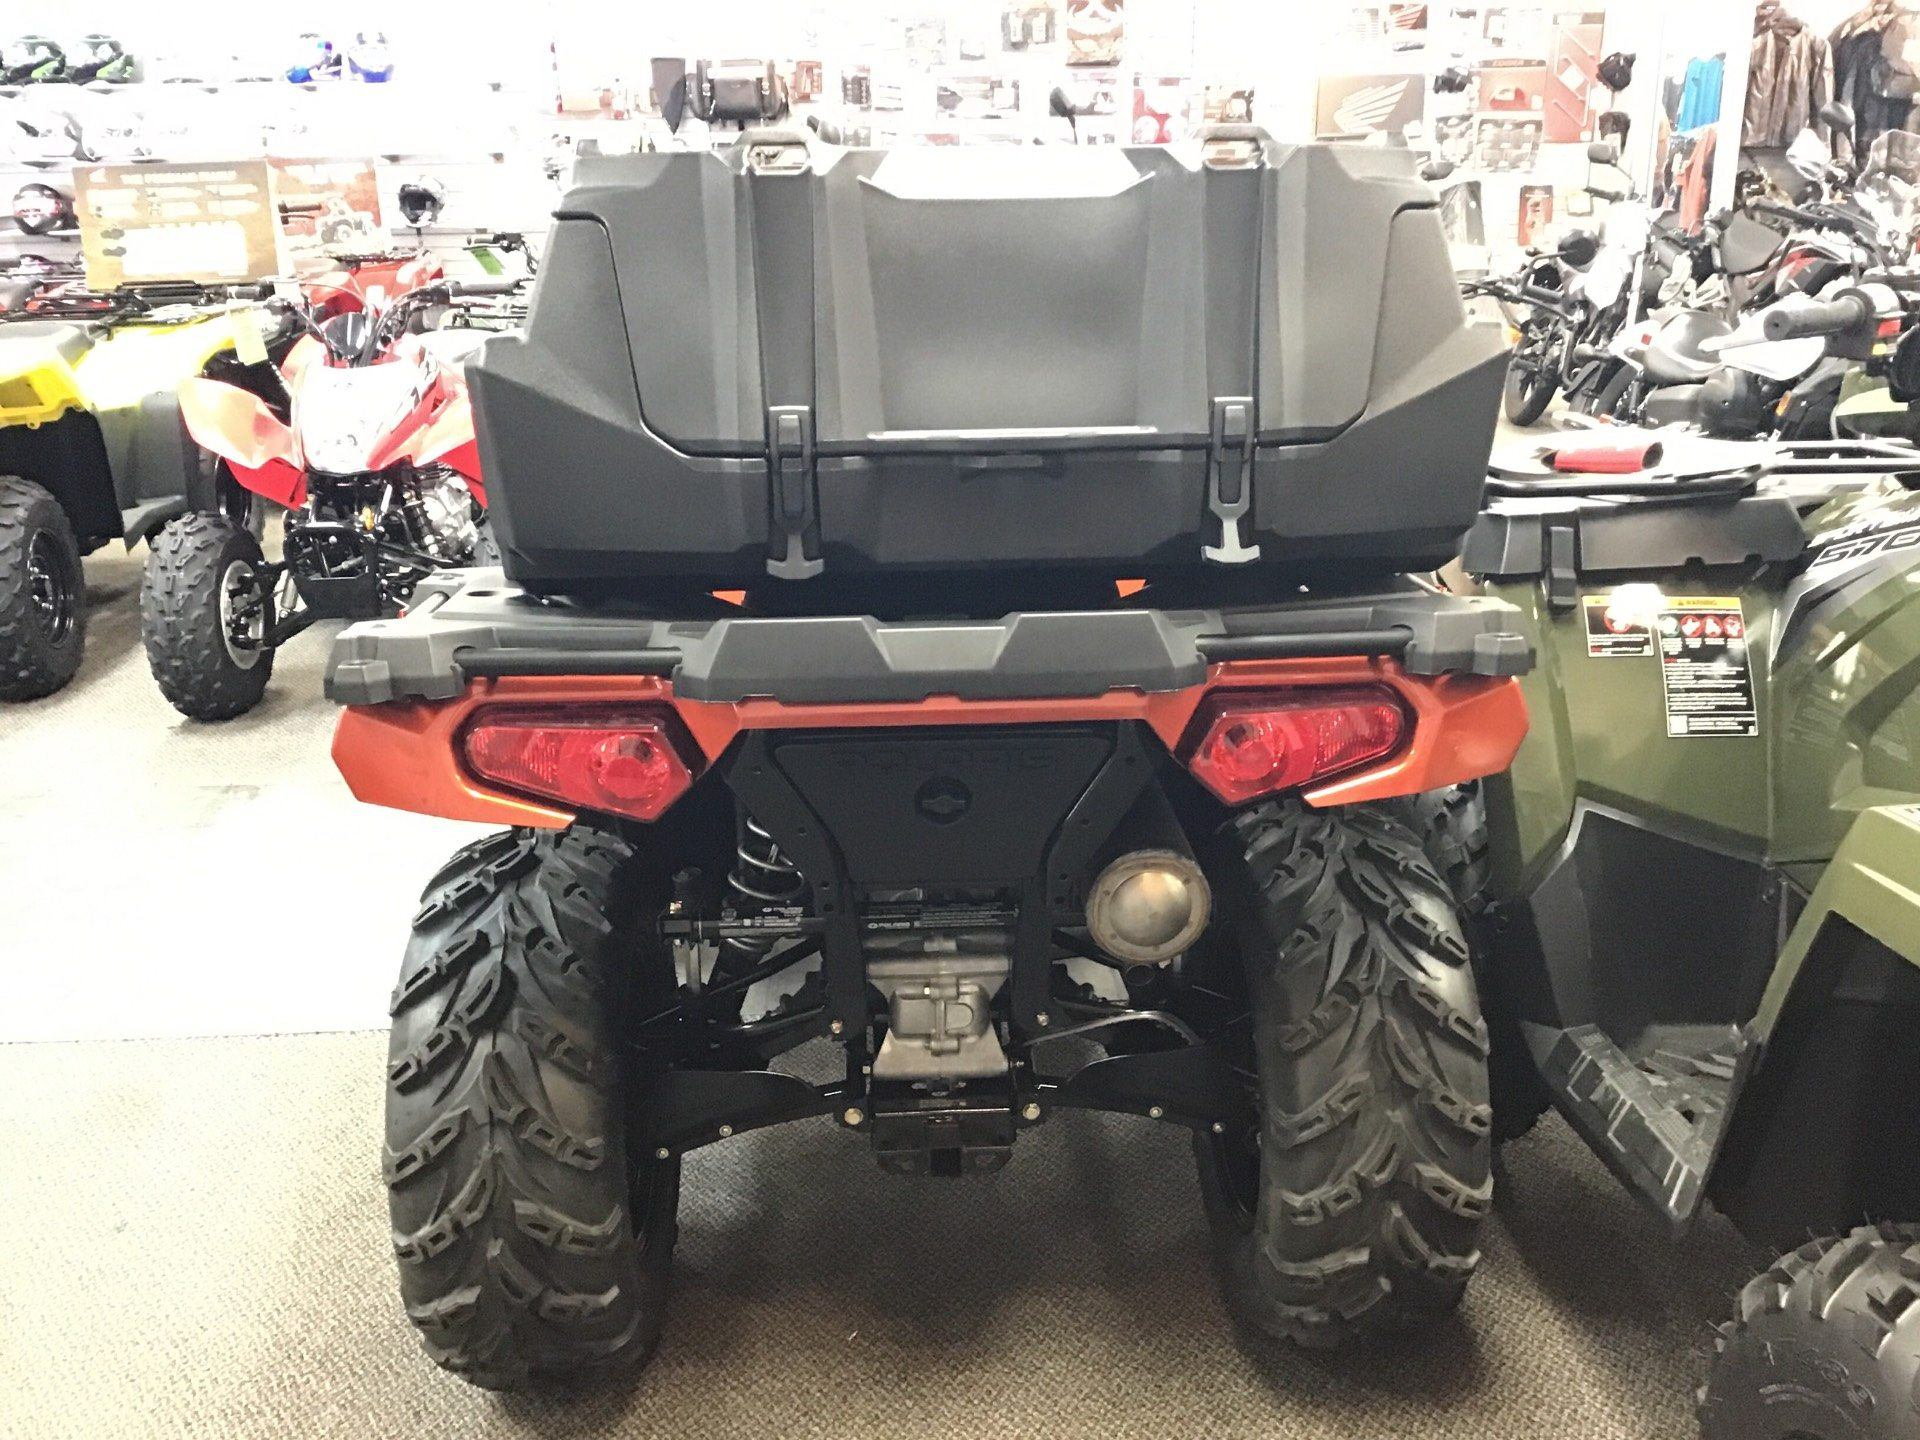 2020 Polaris 570 Sportsman RST in Sterling, Illinois - Photo 3